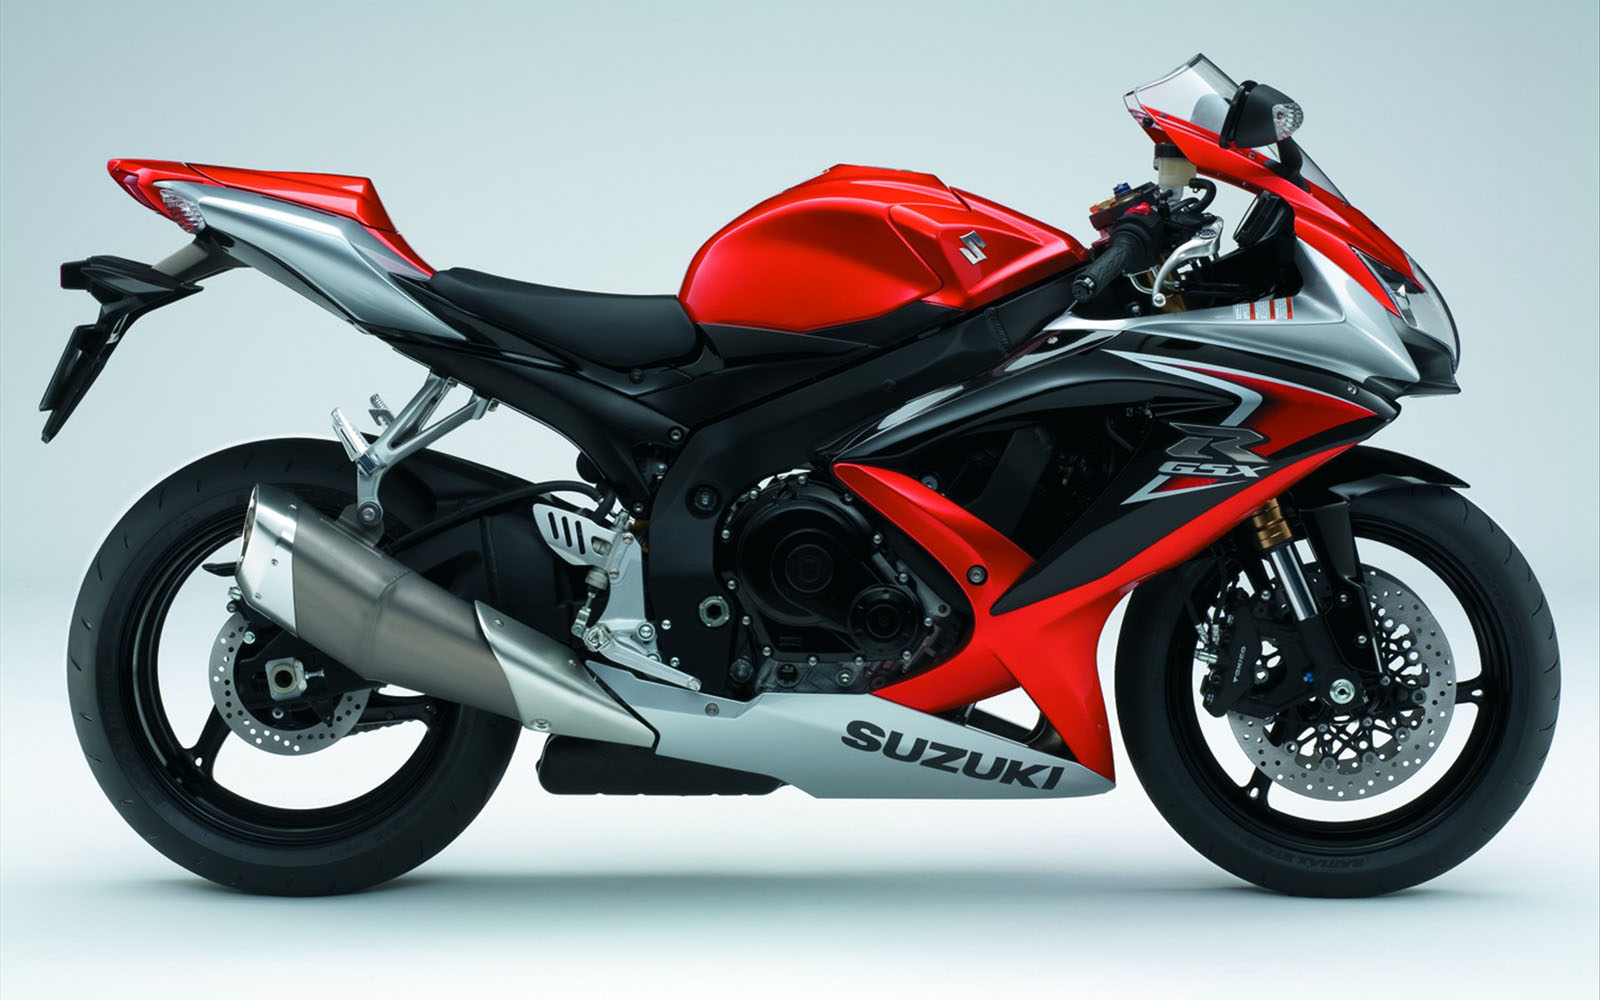 suzuki gsx r 600 wallpapers amazing picture collection. Black Bedroom Furniture Sets. Home Design Ideas